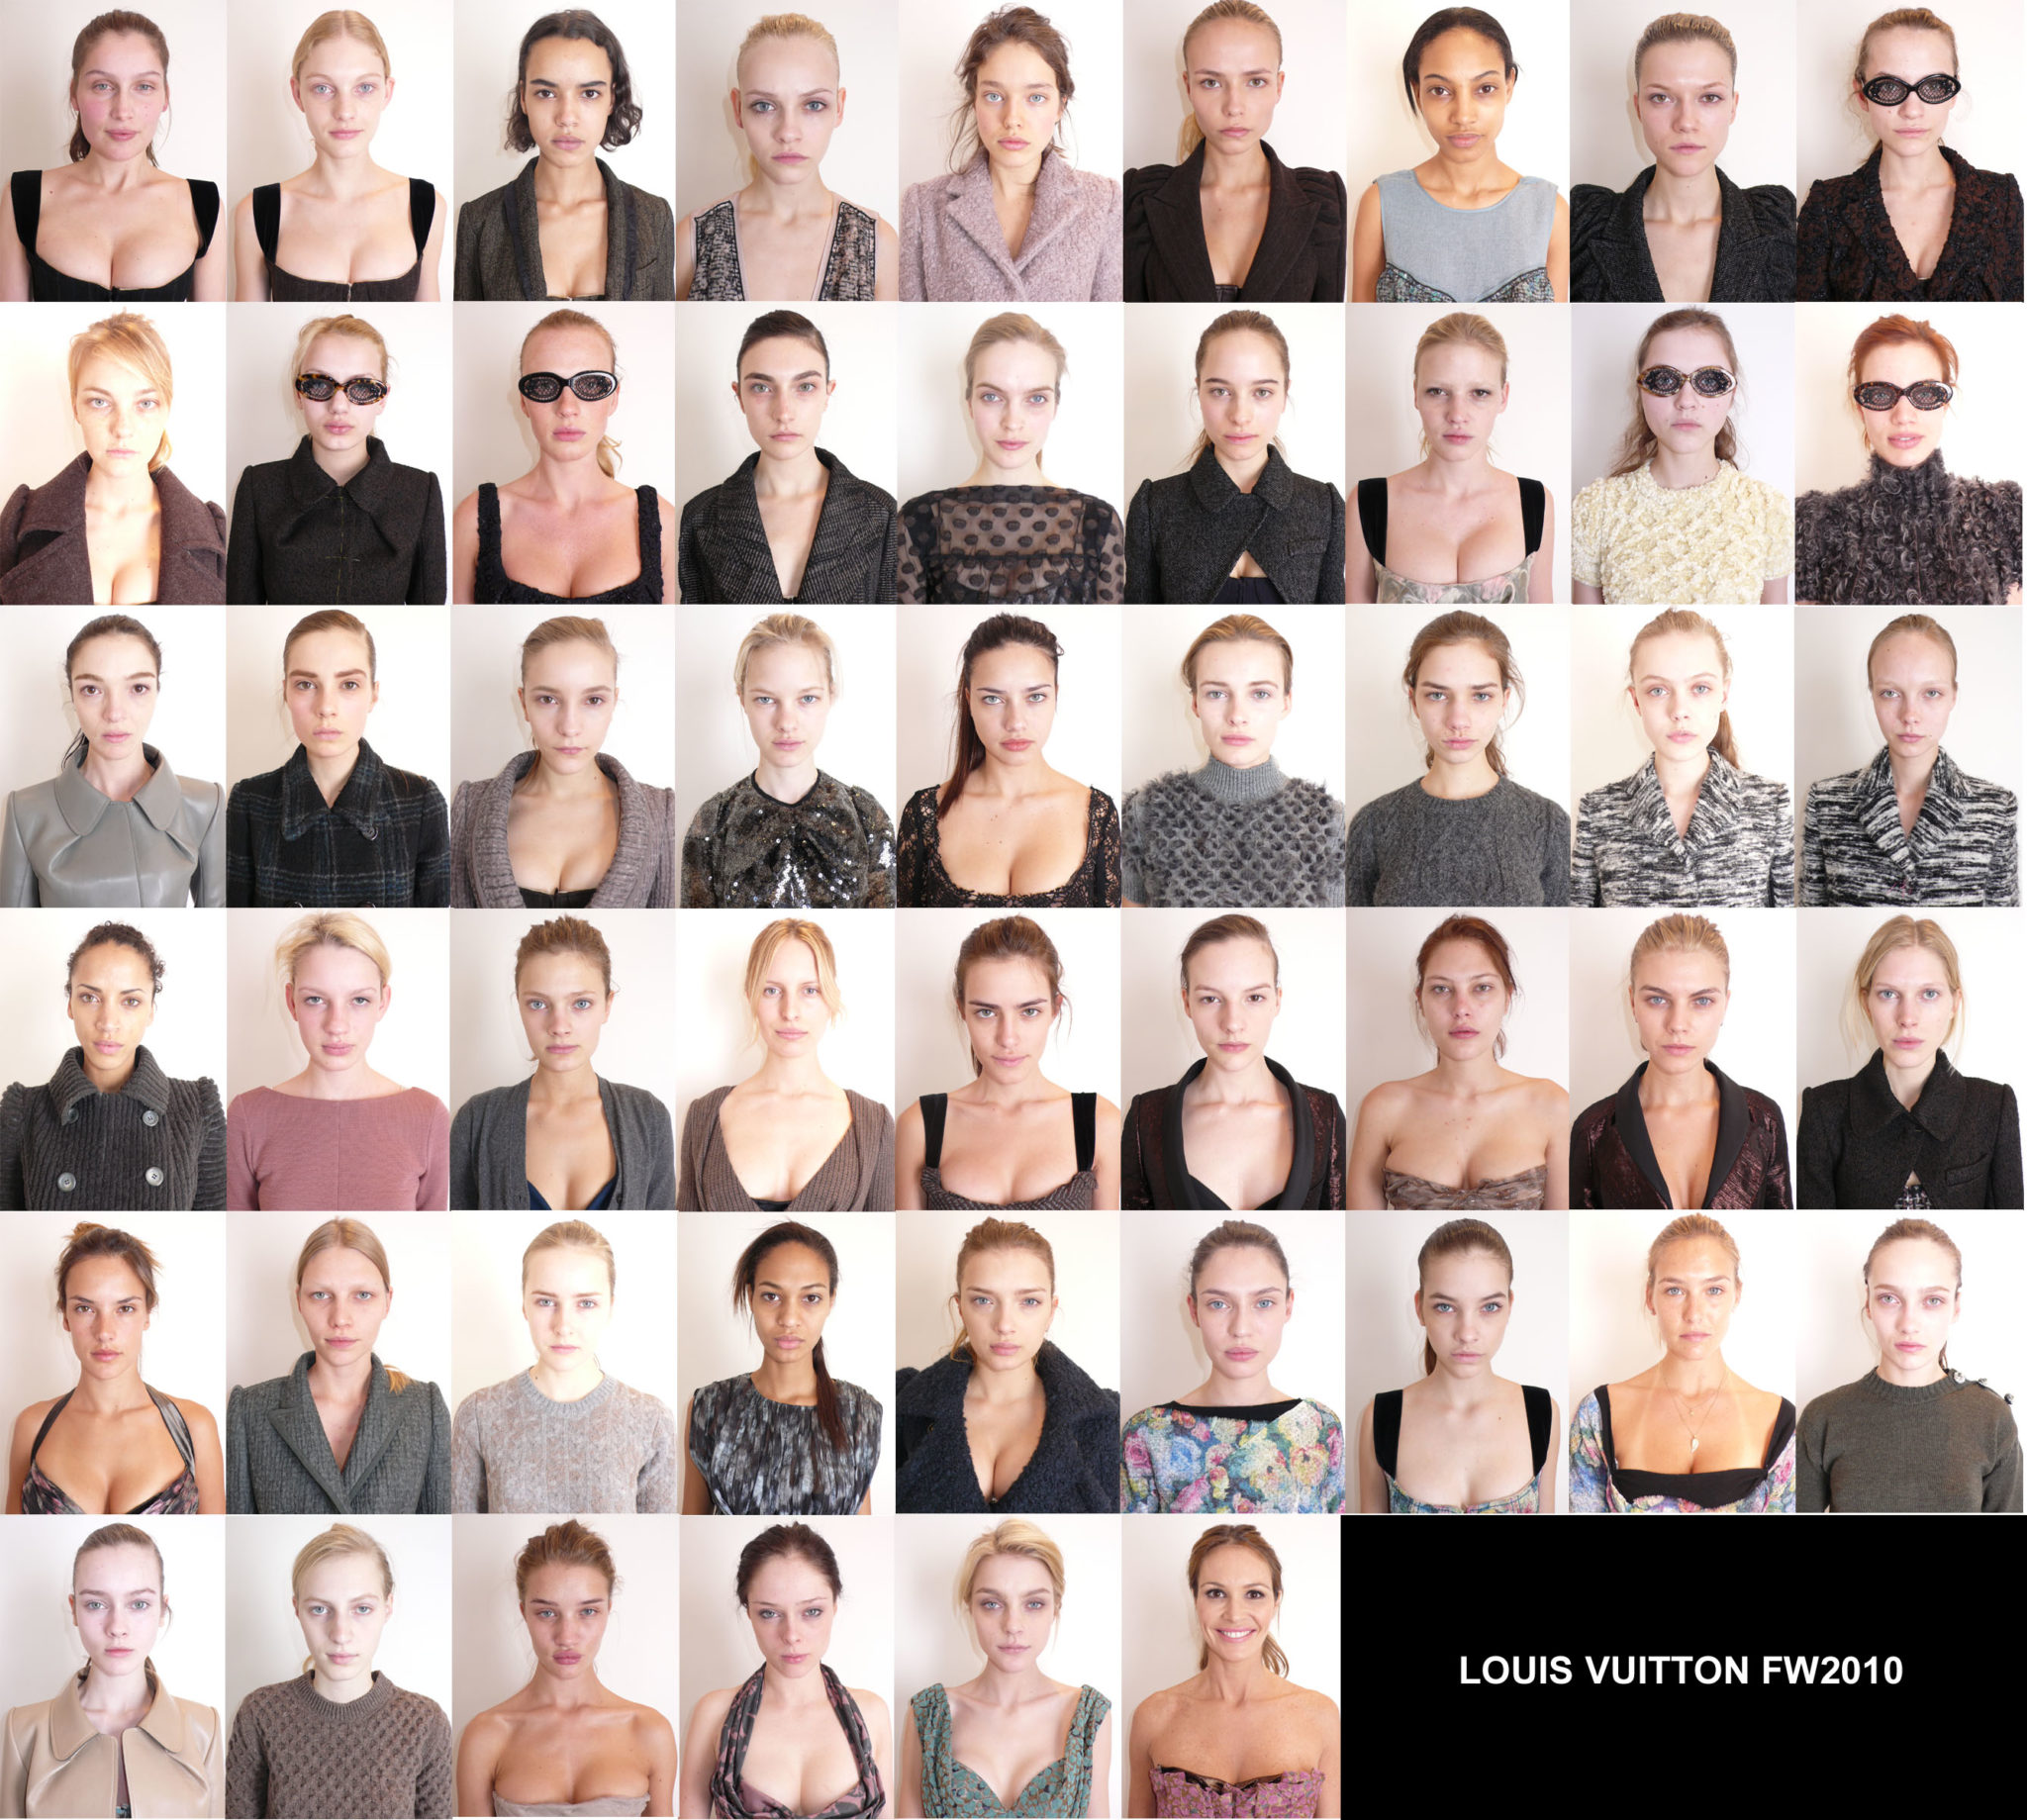 vuitton heads - Your Daily Self Esteem Boost